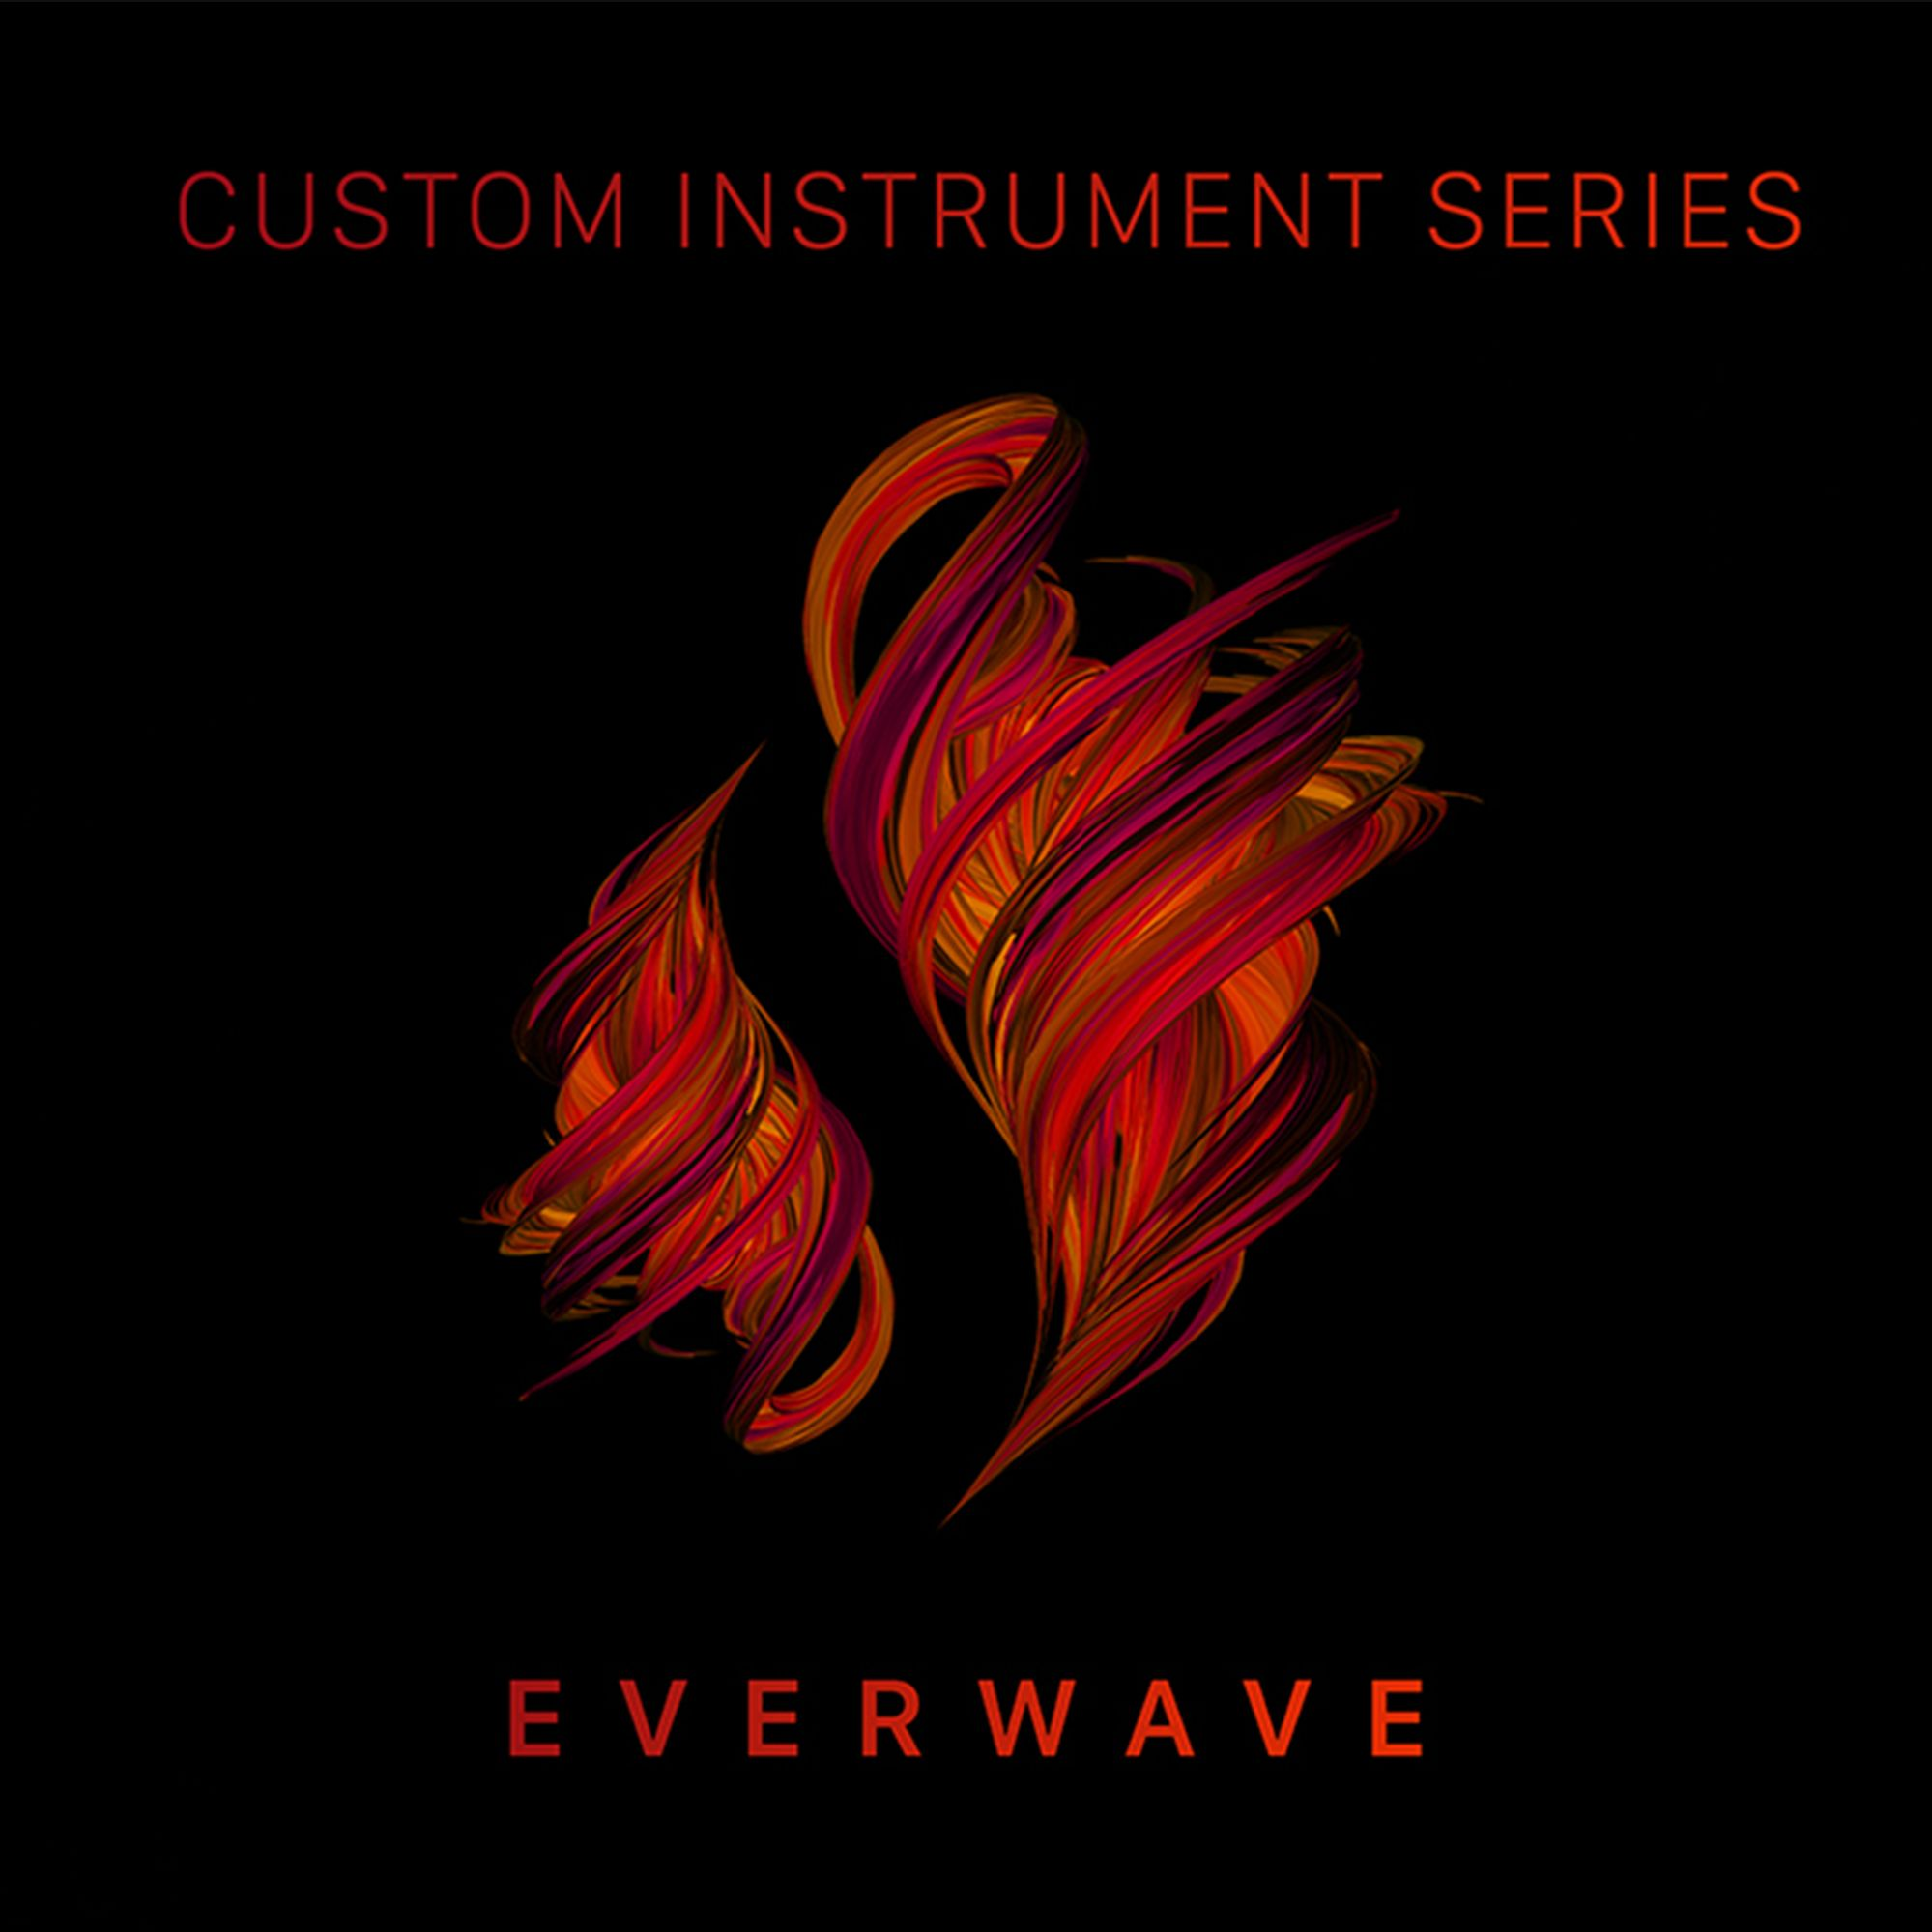 8Dio launches EverWave with sounds of a unique, custom-made string instrument